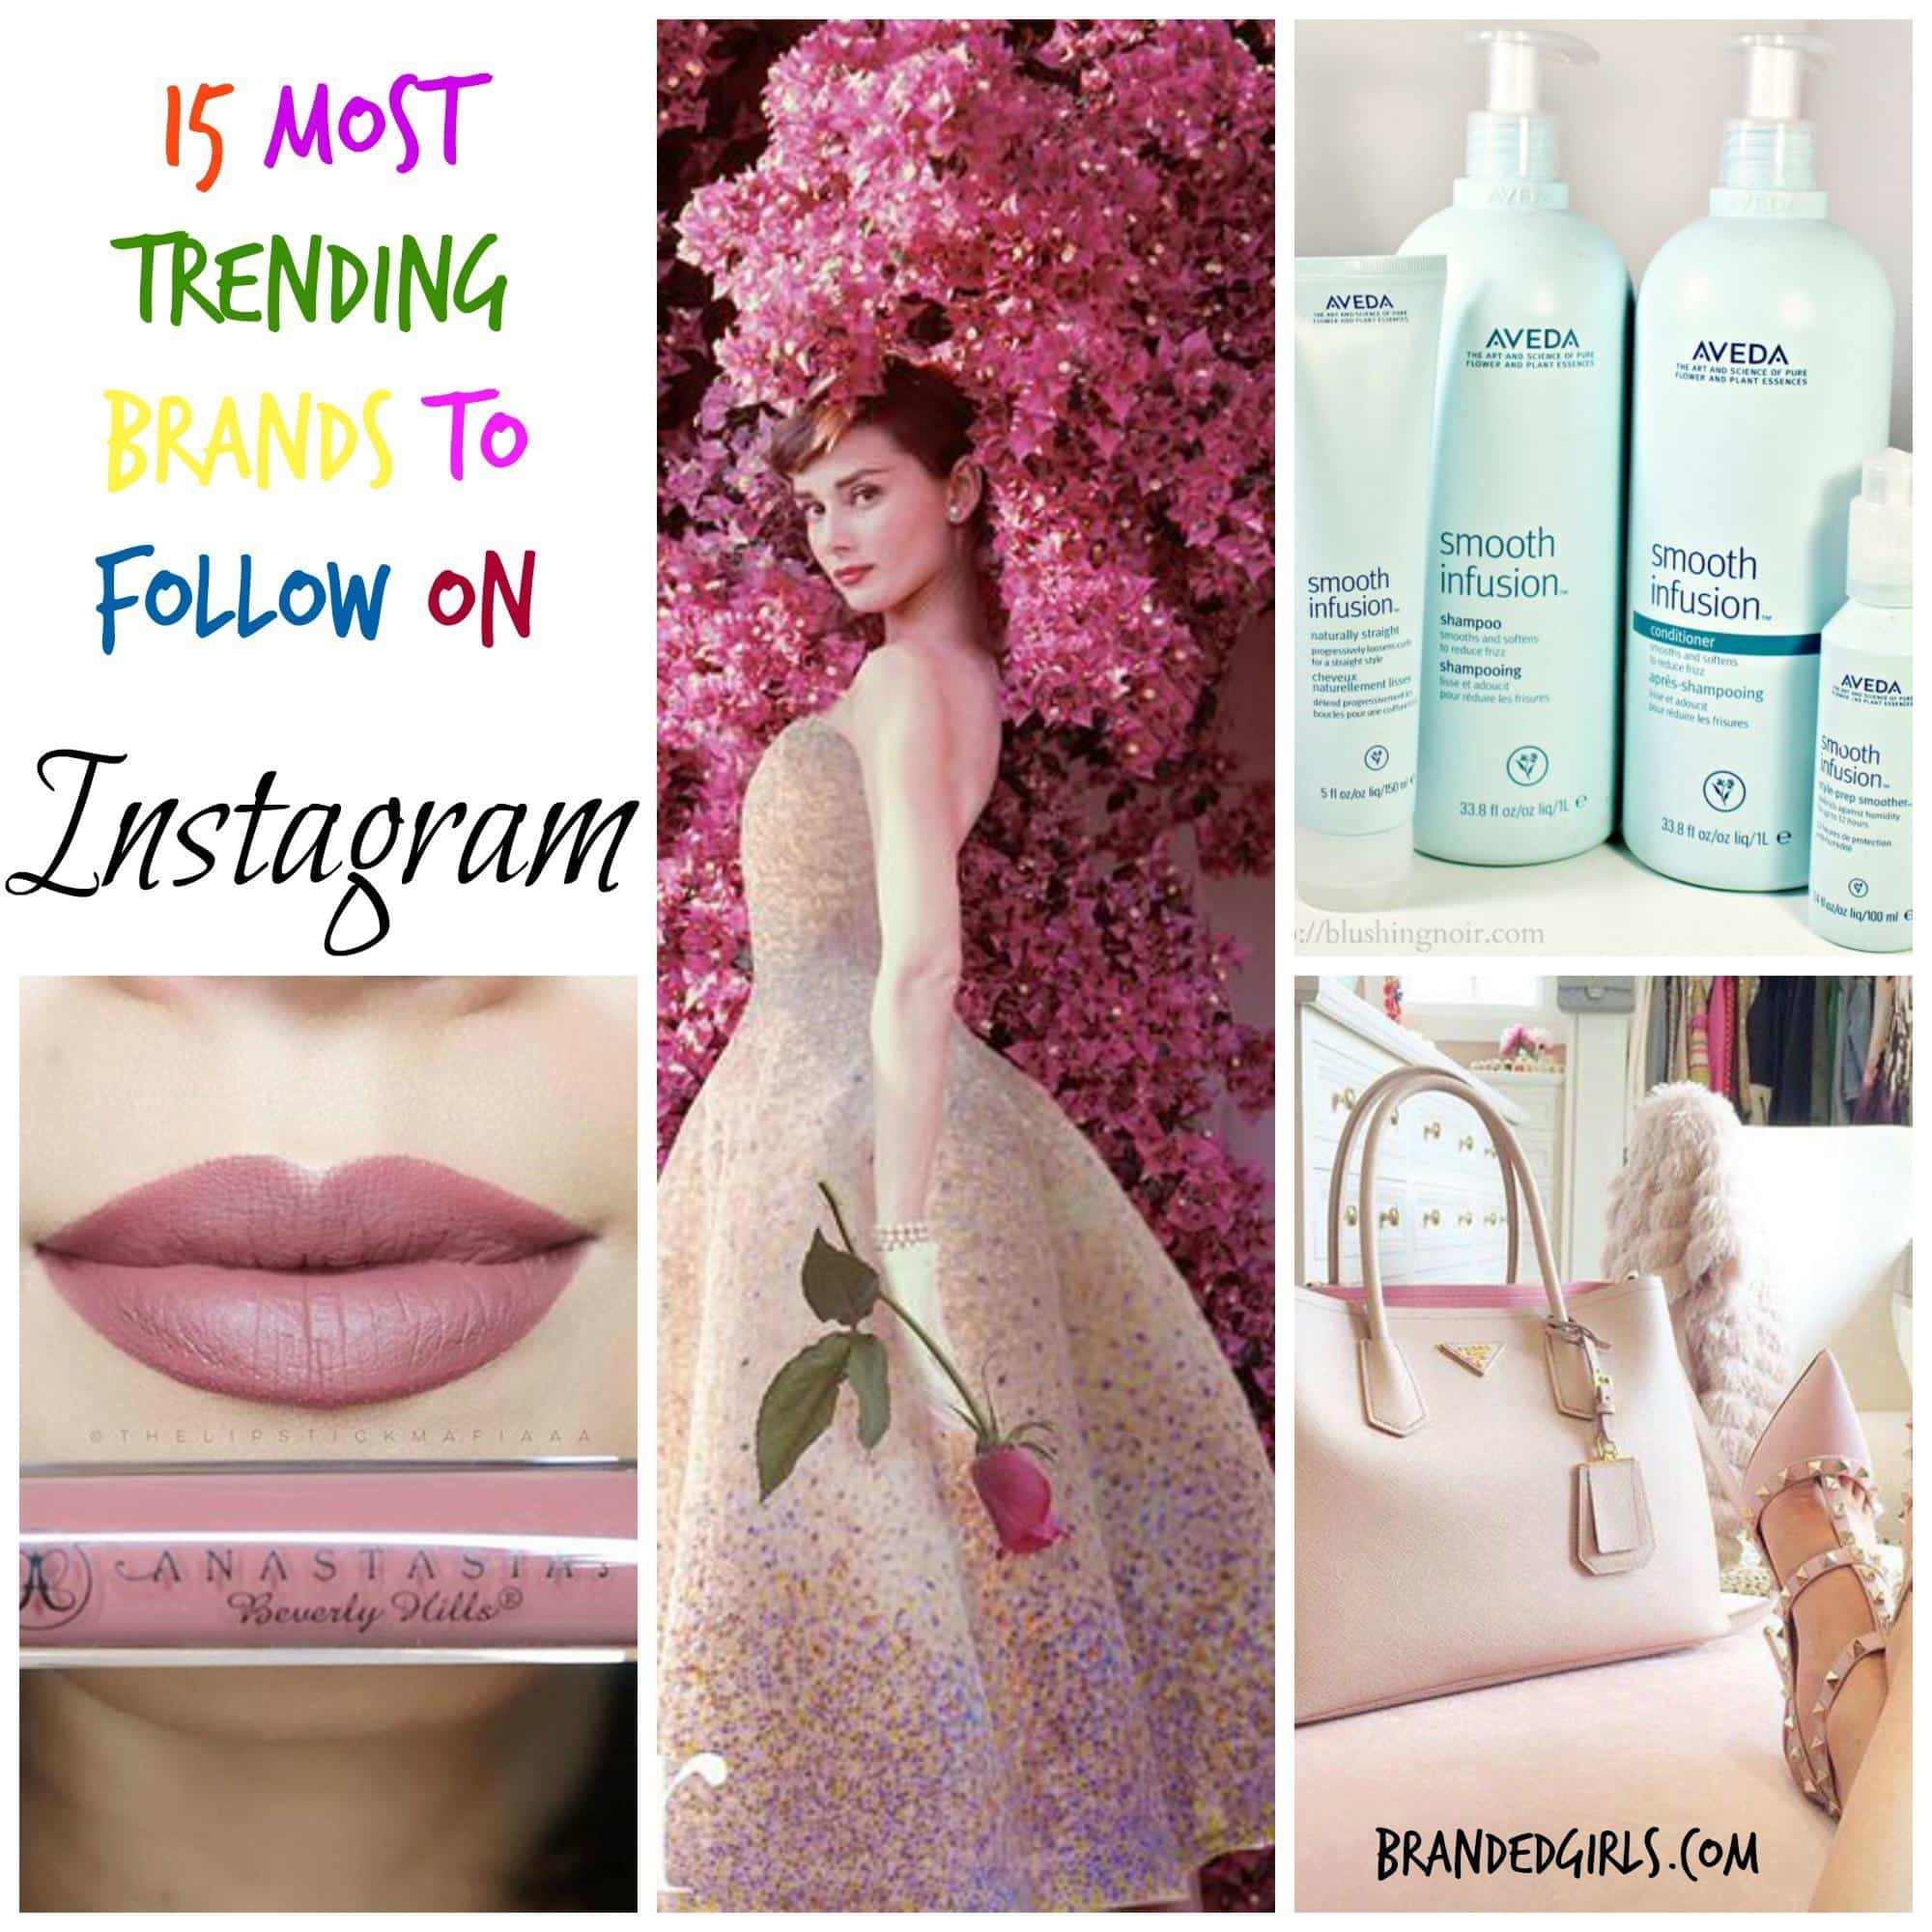 Top 15 Brands for Women To Follow On Instagram for Styling Tips